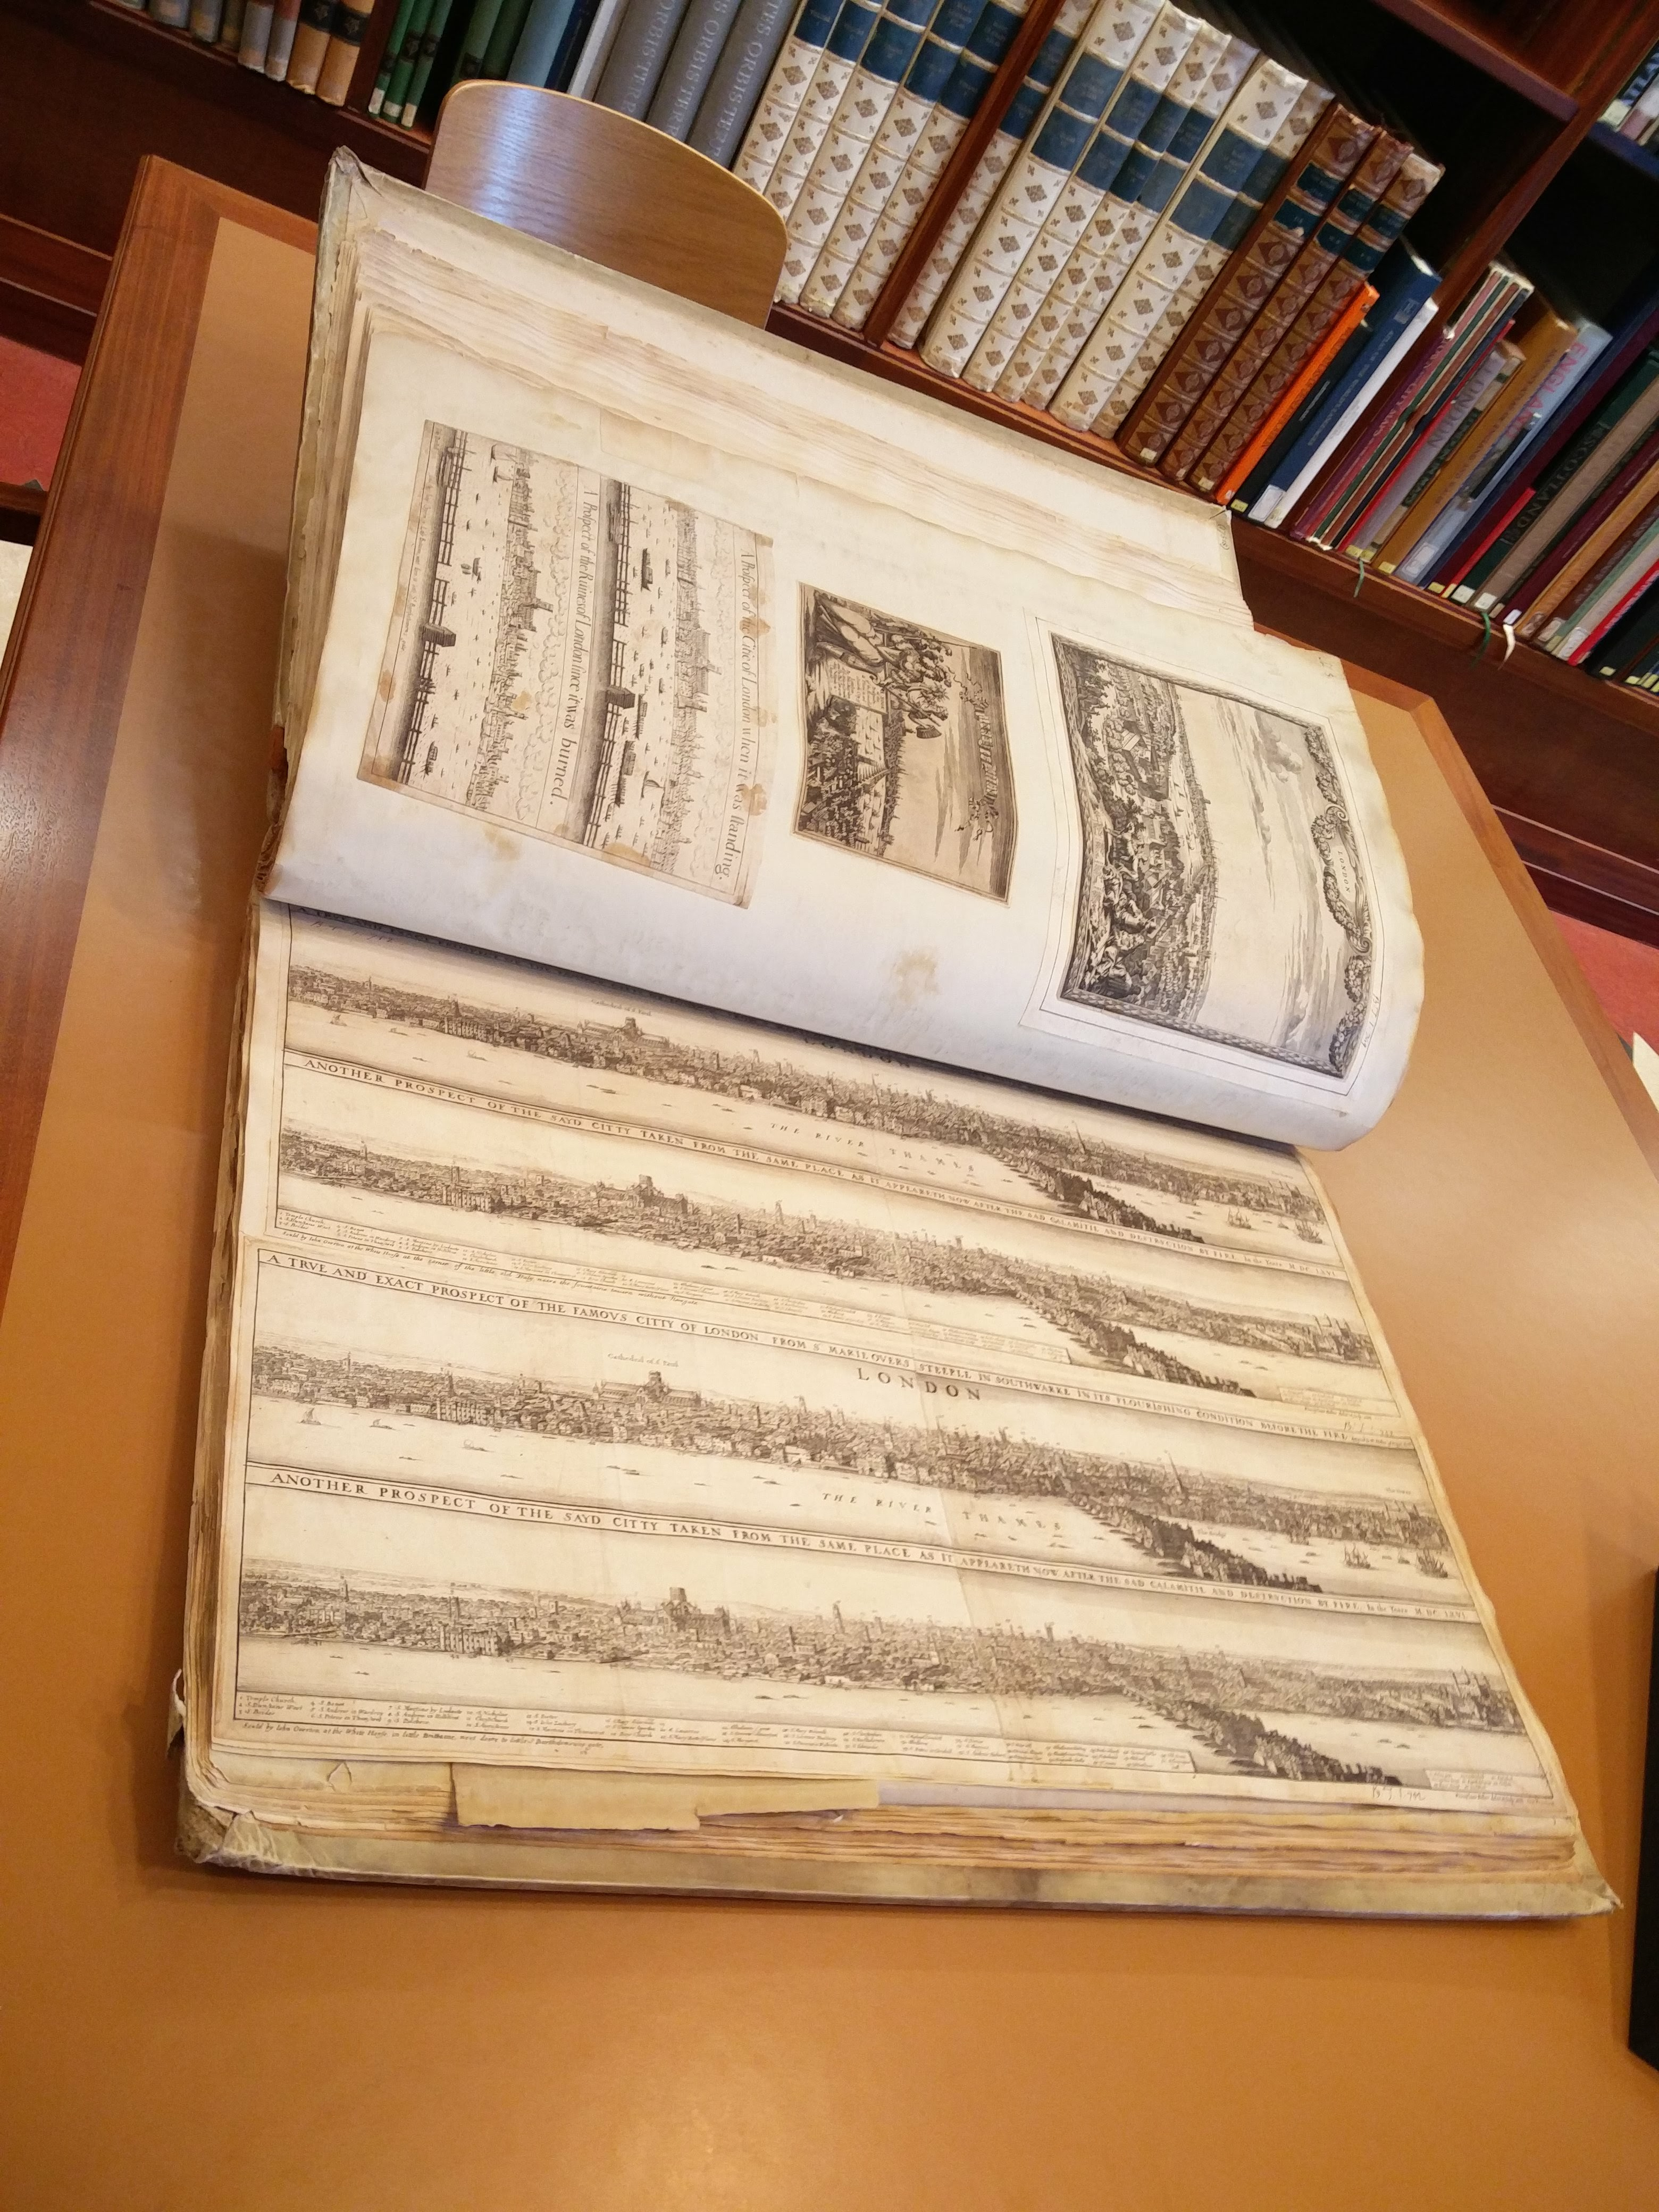 """We like big books! This commonplace book of maps and views of London (17th-18th centuries – Bodleian Gough Maps 21) was definitely the heaviest tome consulted last week!"""